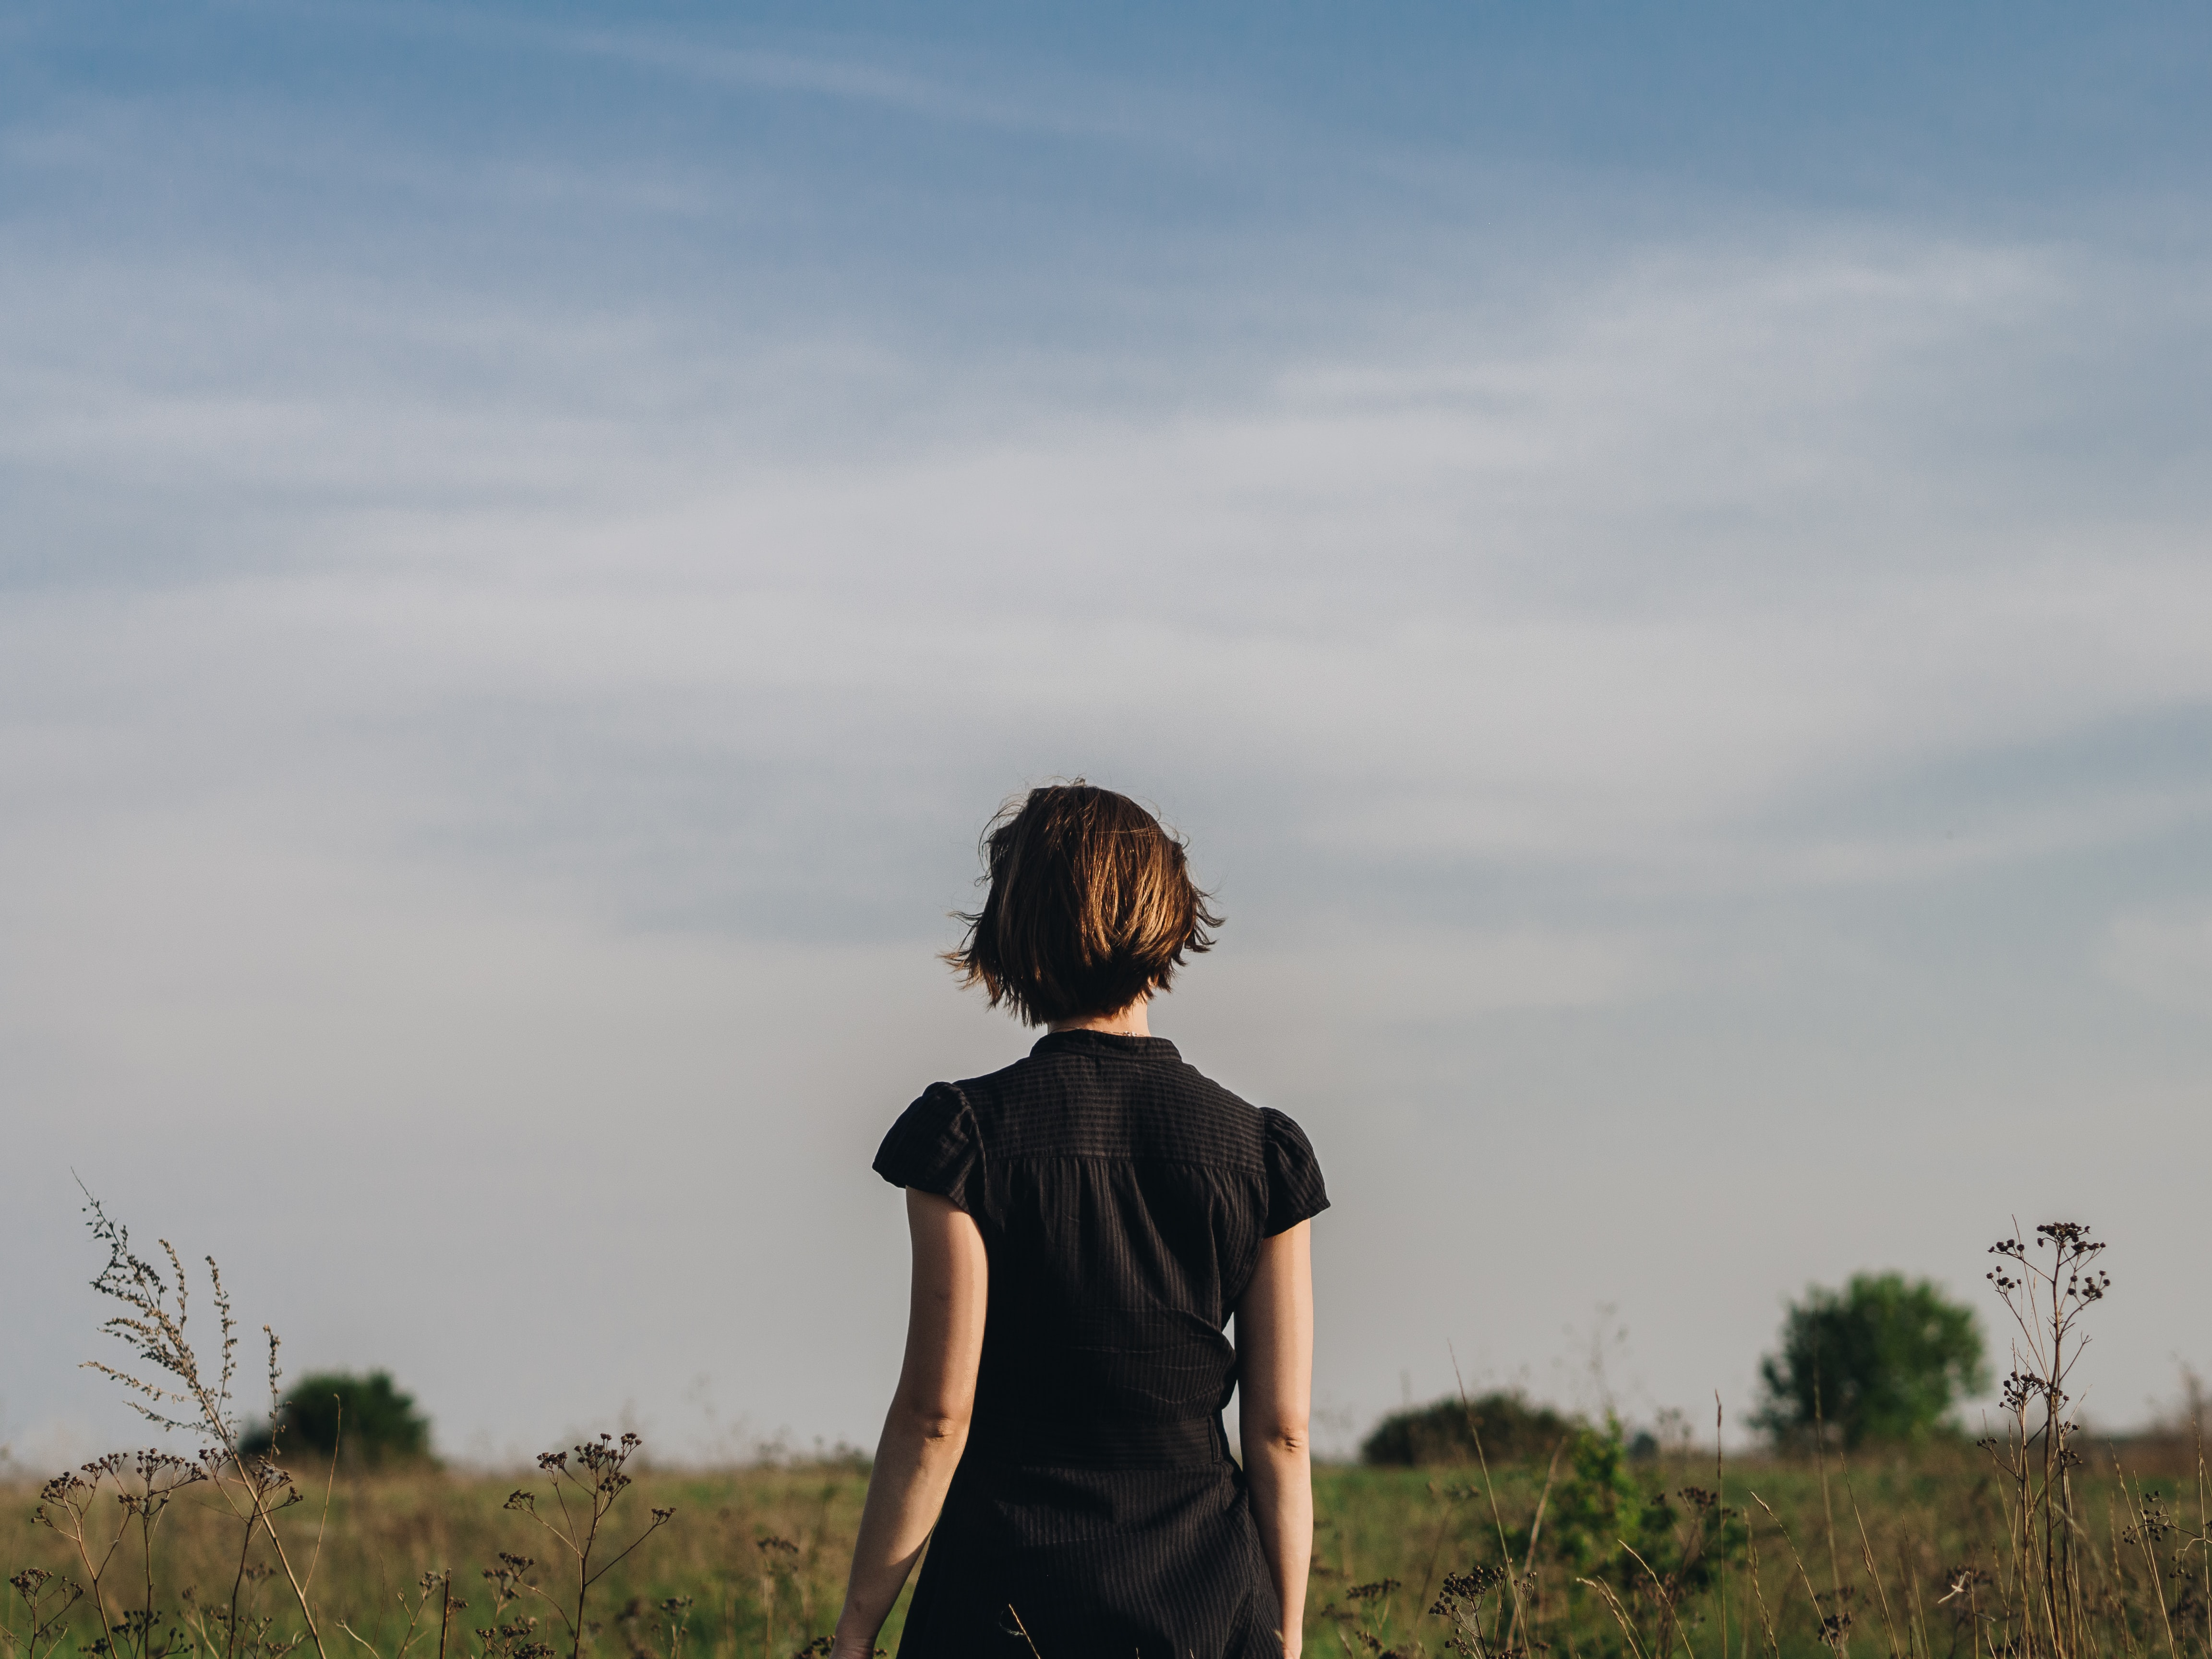 woman in black shirt standing in grass field